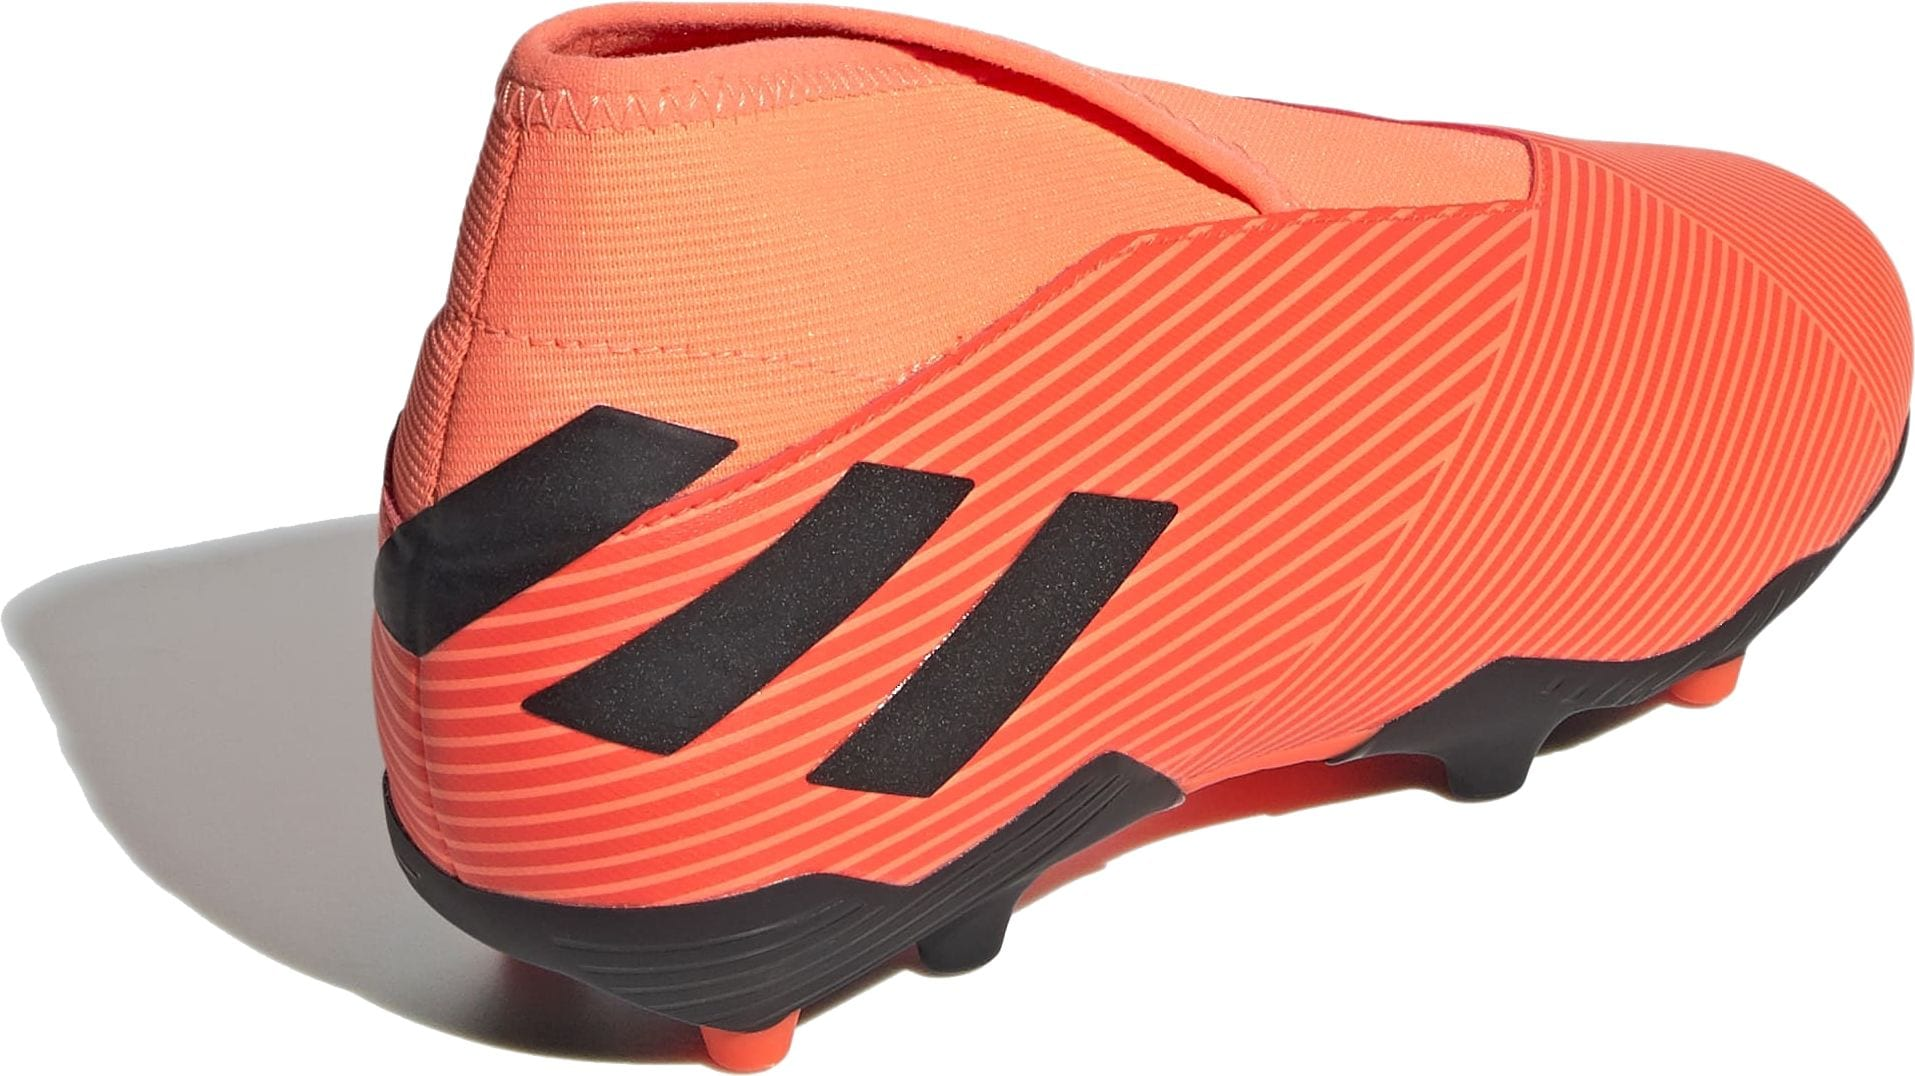 355721101111, Nemeziz 19.3 Laceless Firm Ground Boots, ADIDAS, Detail